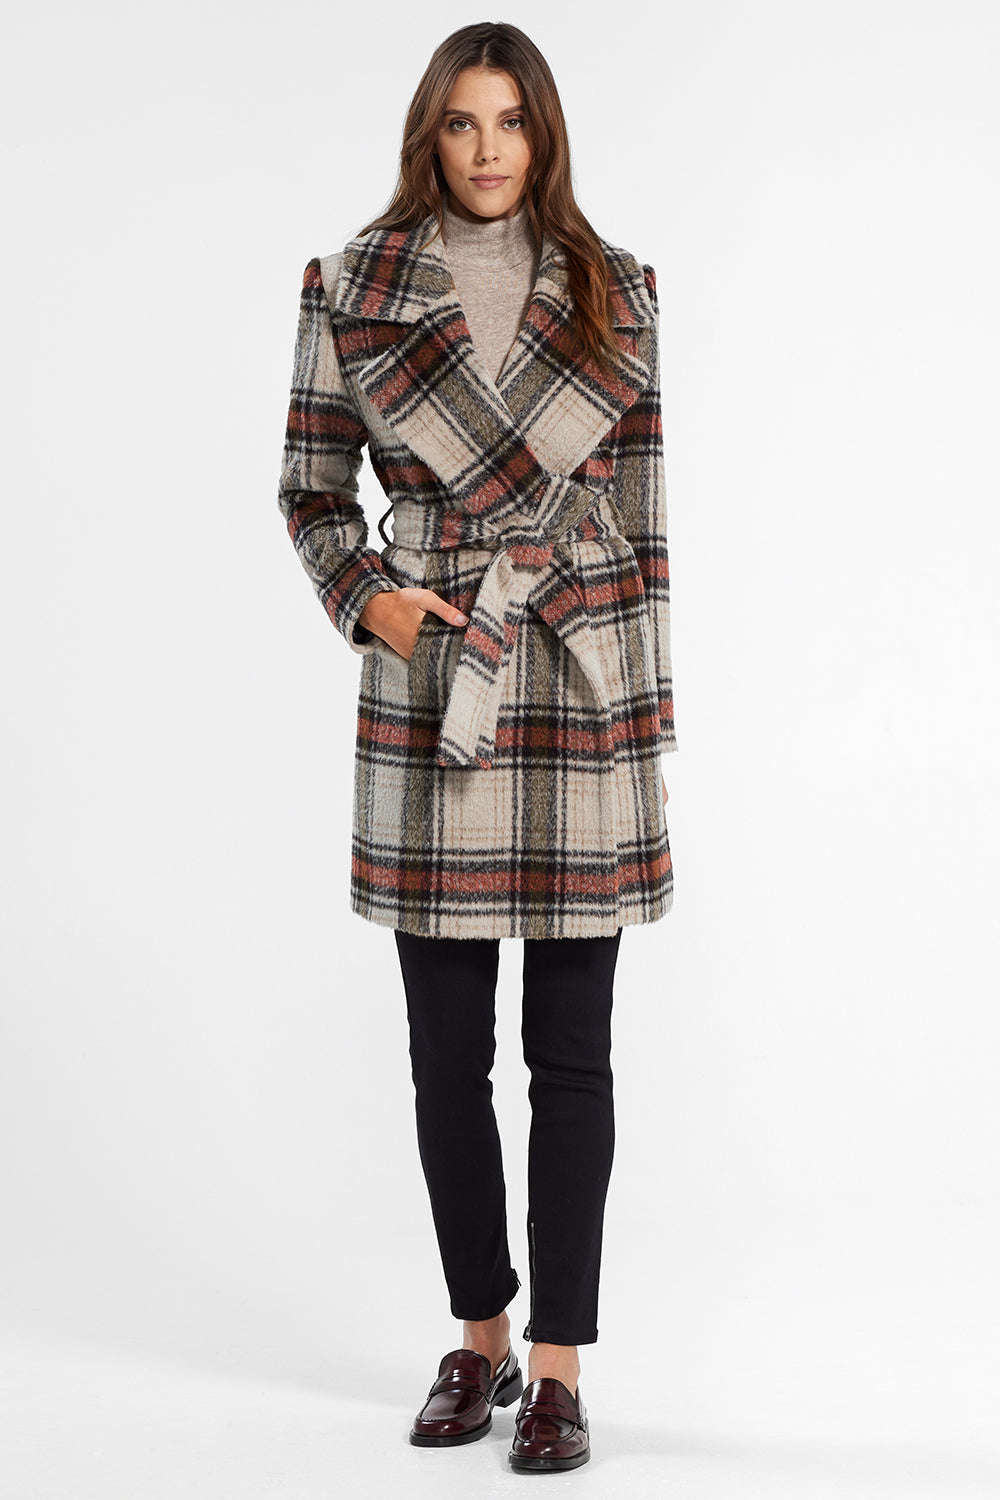 Sentaler Plaid Mid Length Notched Collar Wrap Coat featured in Suri Alpaca and available in Sand Plaid. Seen from front.